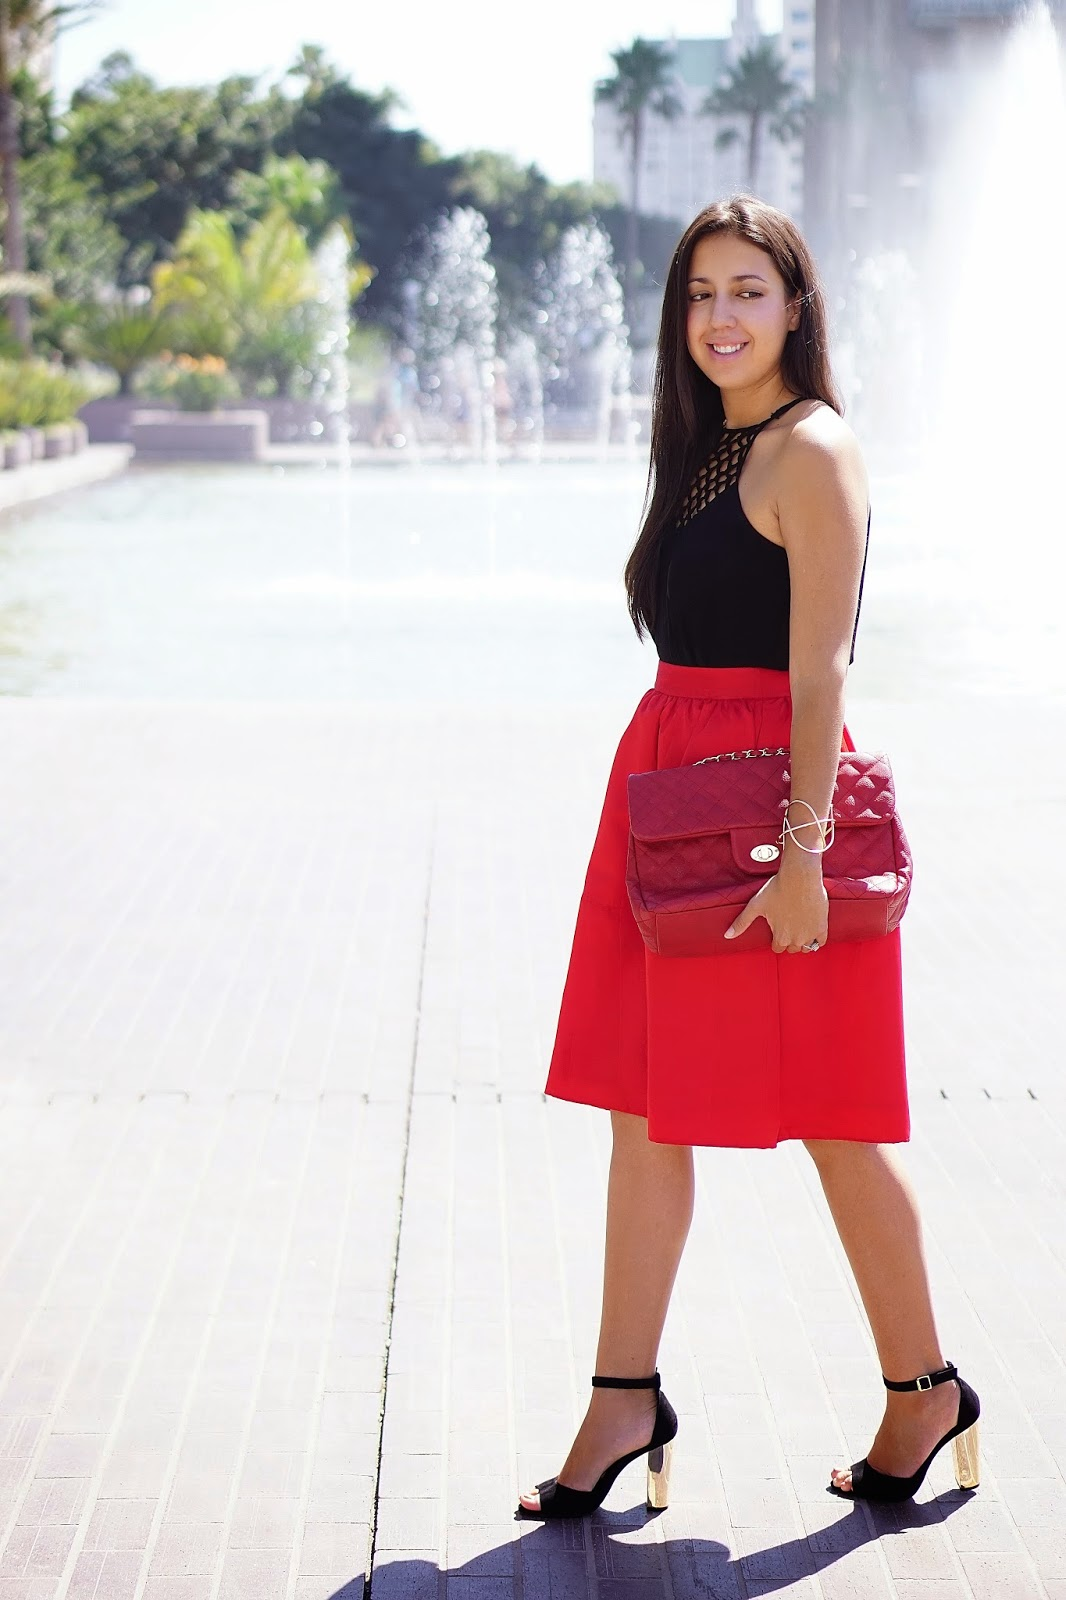 http://www.truehonestfashion.com/2014/09/red-midi.html